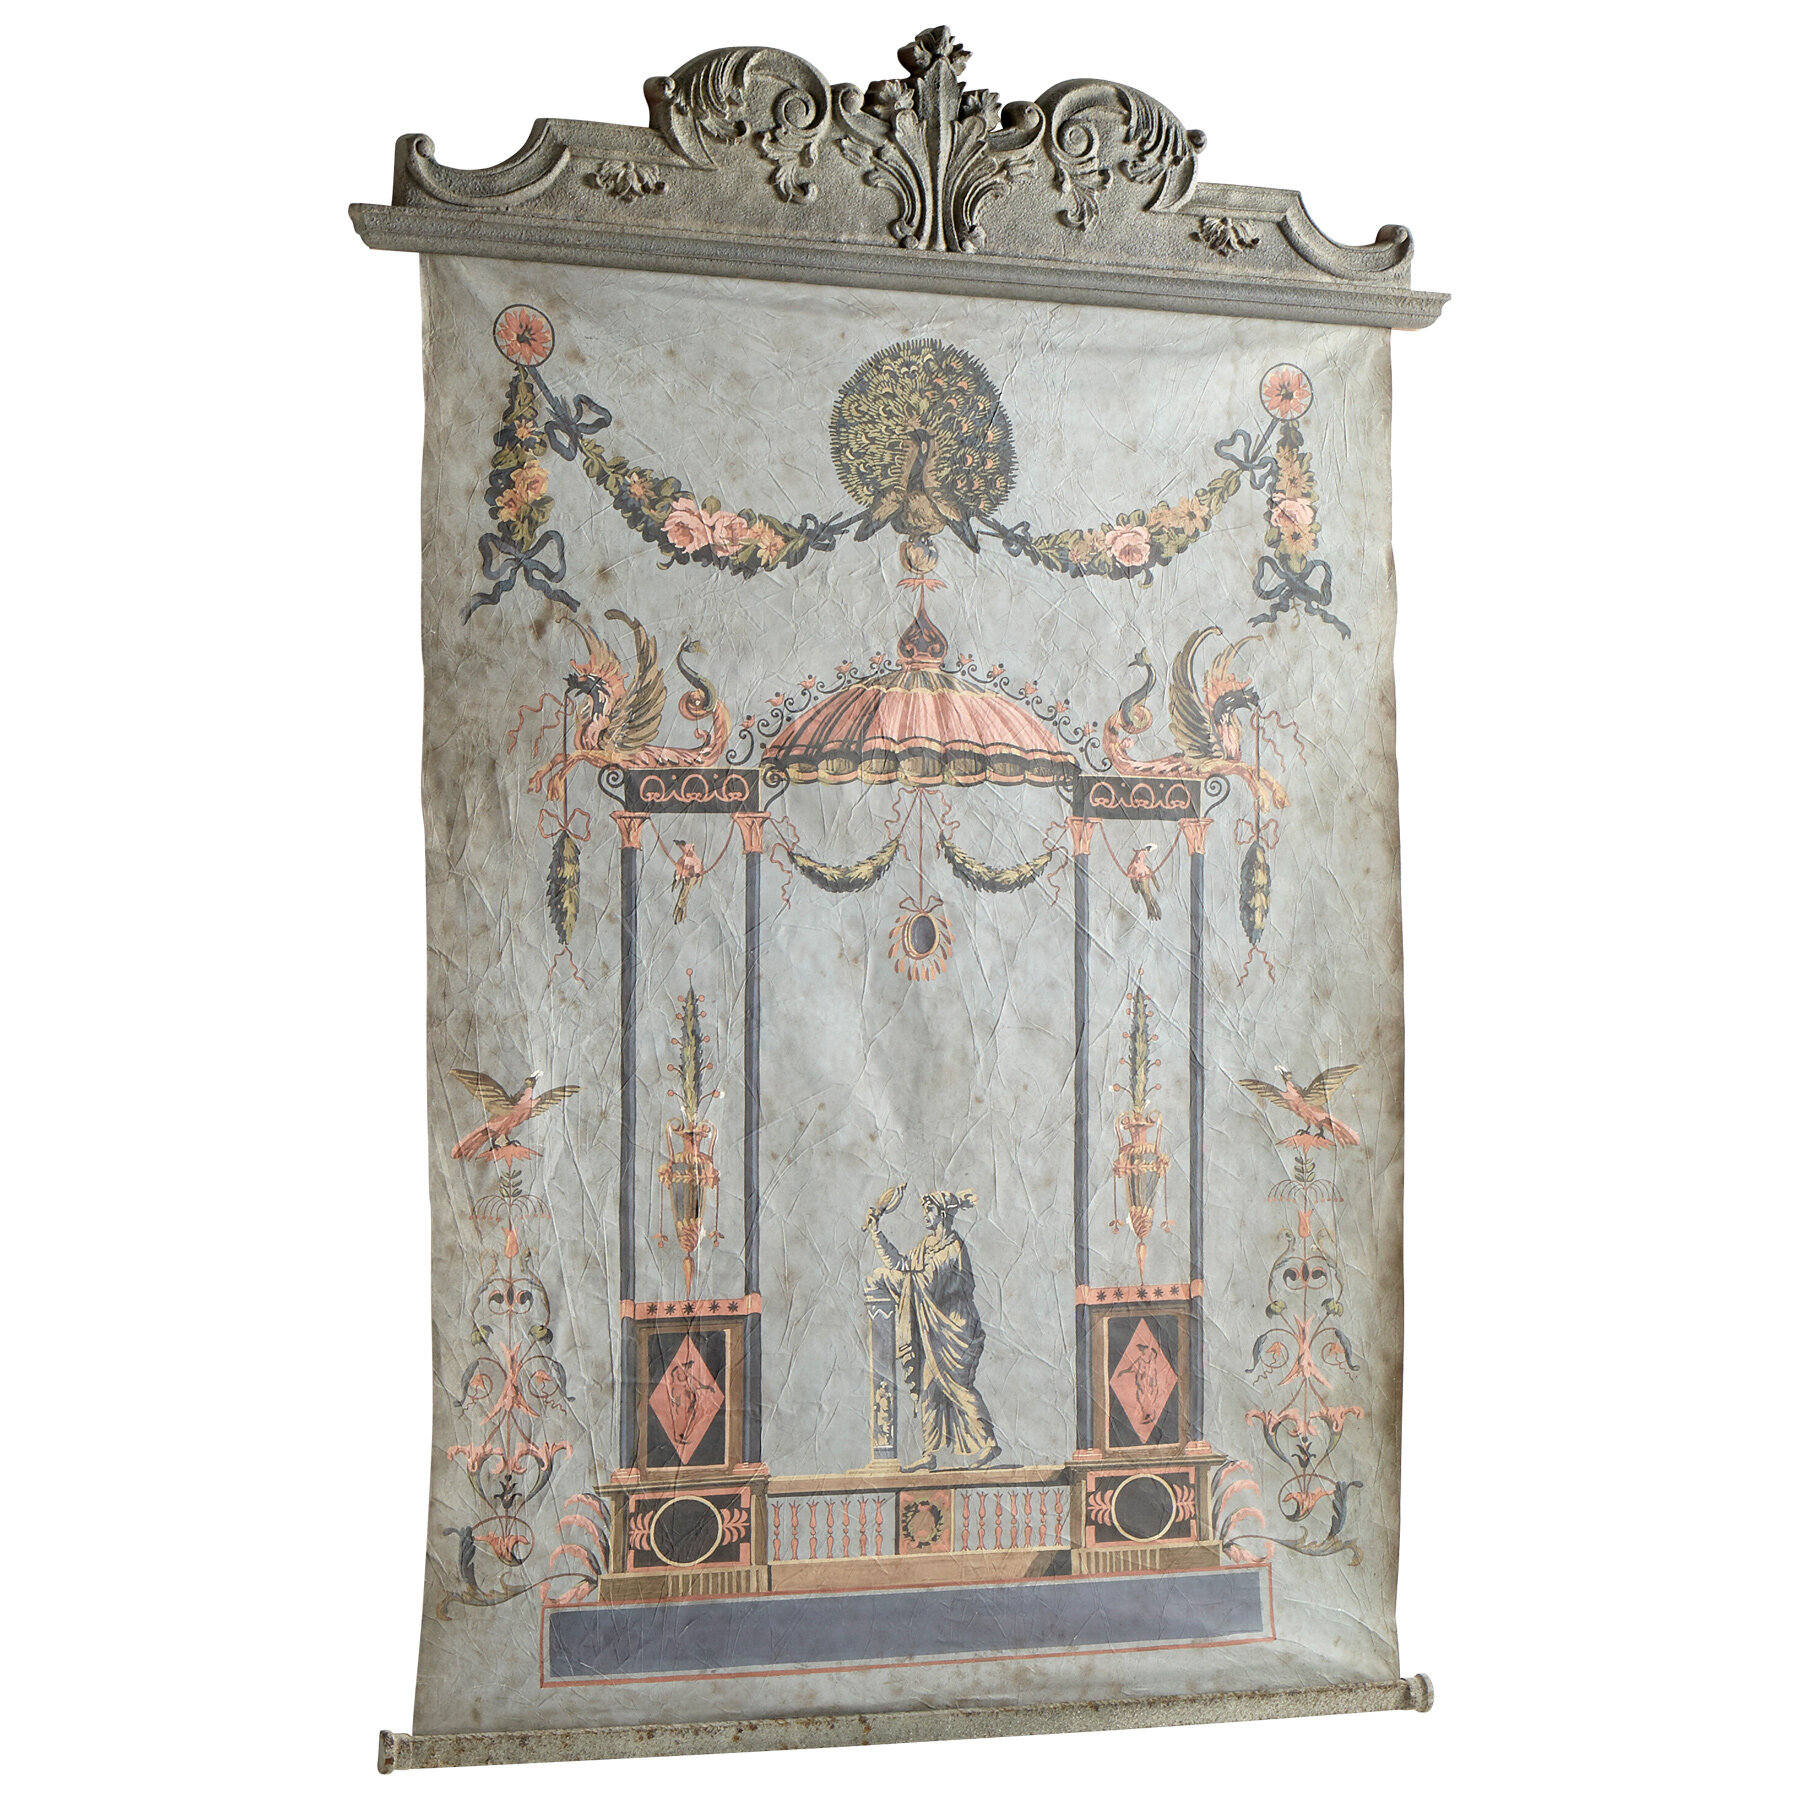 Blended Fabric Ethereal Days Chinoiserie Wall Hanging With Rod Pertaining To Most Popular Blended Fabric Hidden Garden Chinoiserie Wall Hangings With Rod (View 2 of 20)